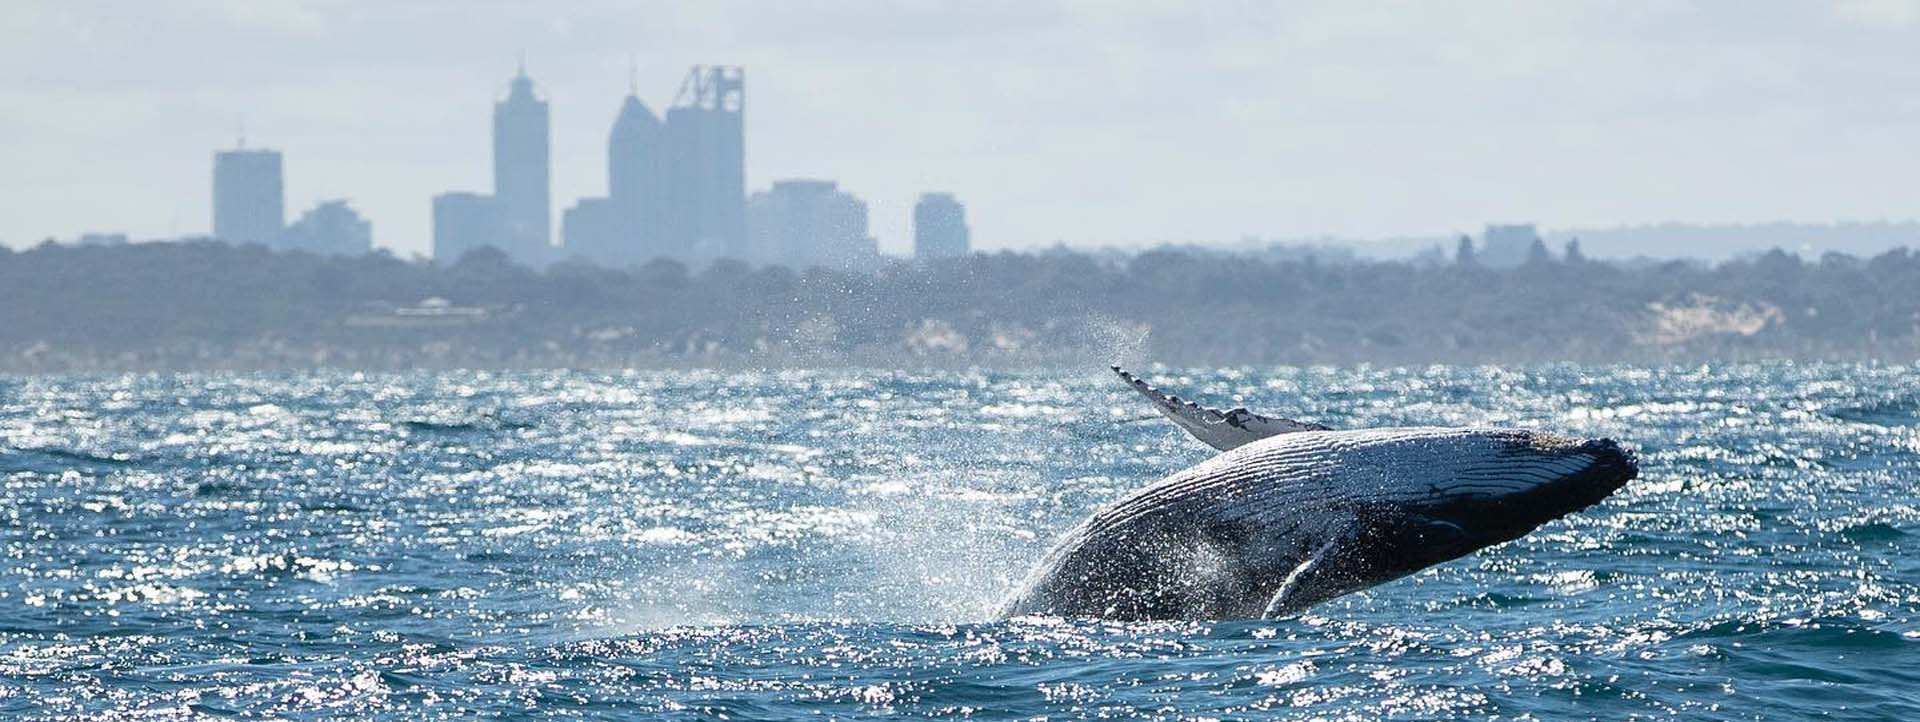 PERTH WHALE WATCHING PRICES 2020 slider